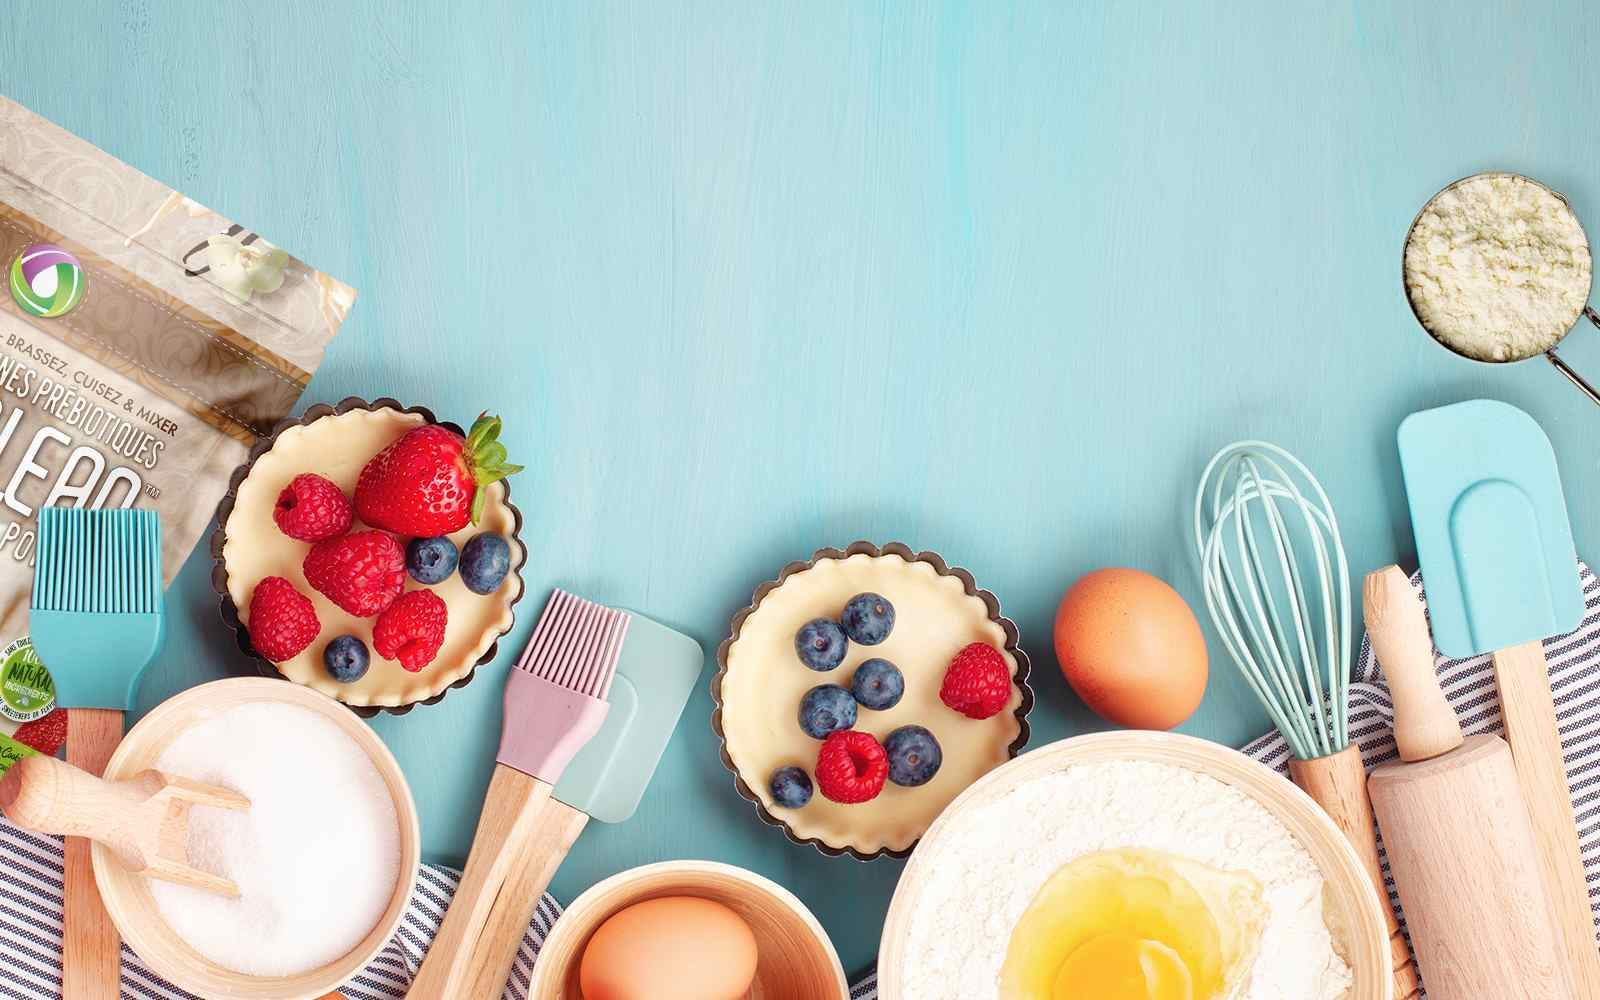 Our Favourite 7 Bakeware Products!